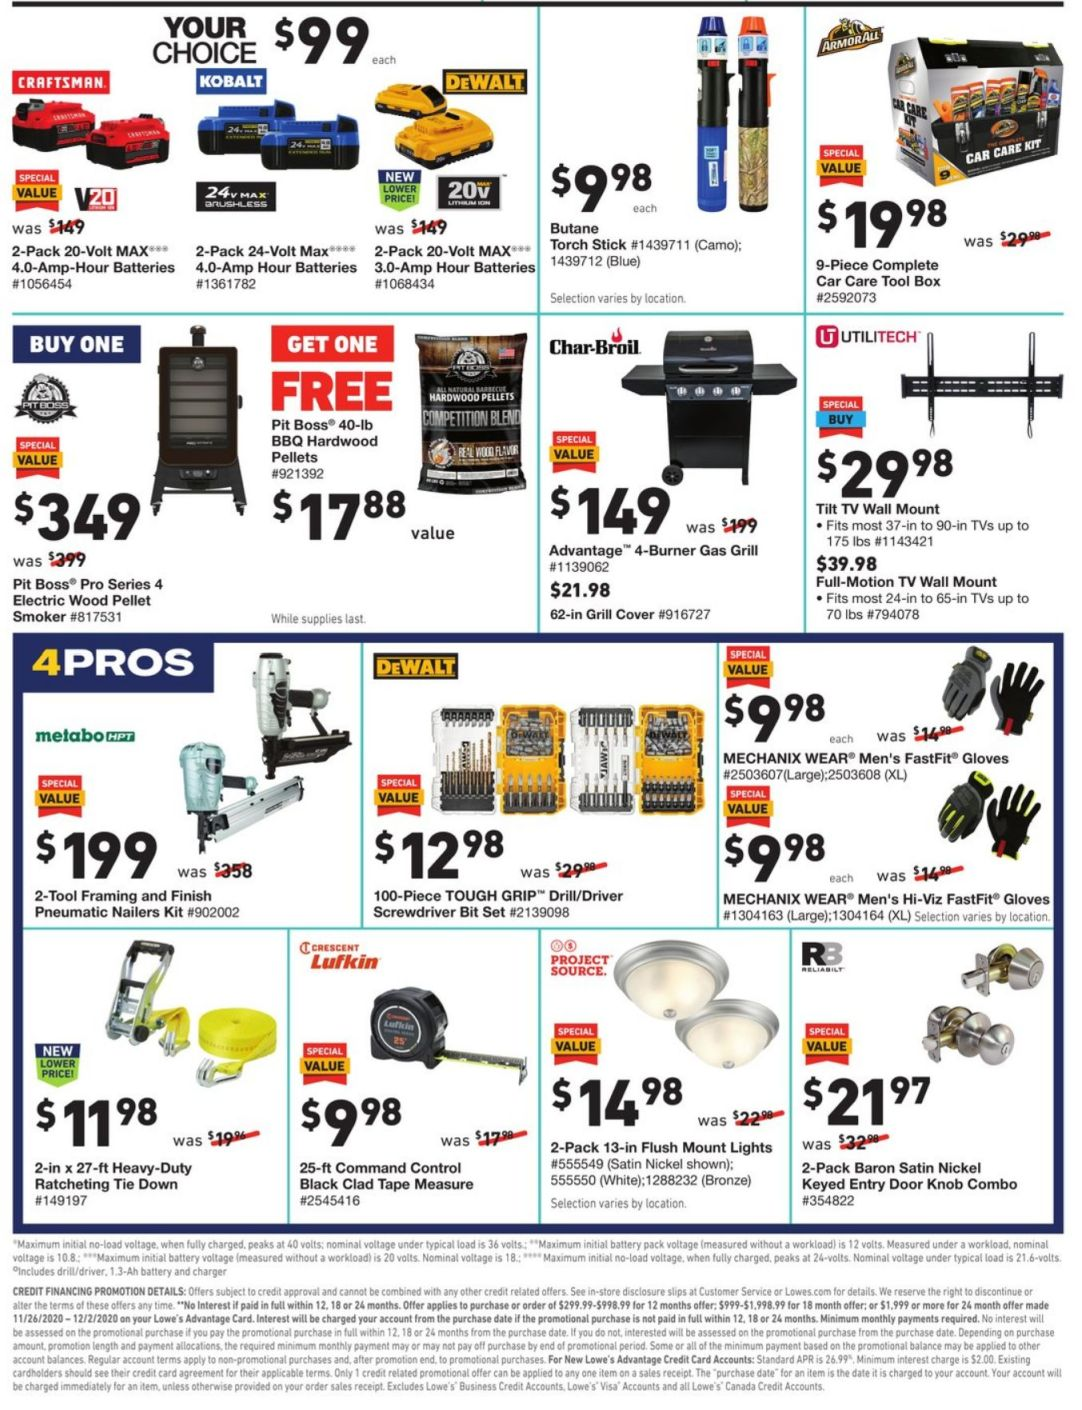 Lowe's Cyber Monday 2020 Page 6